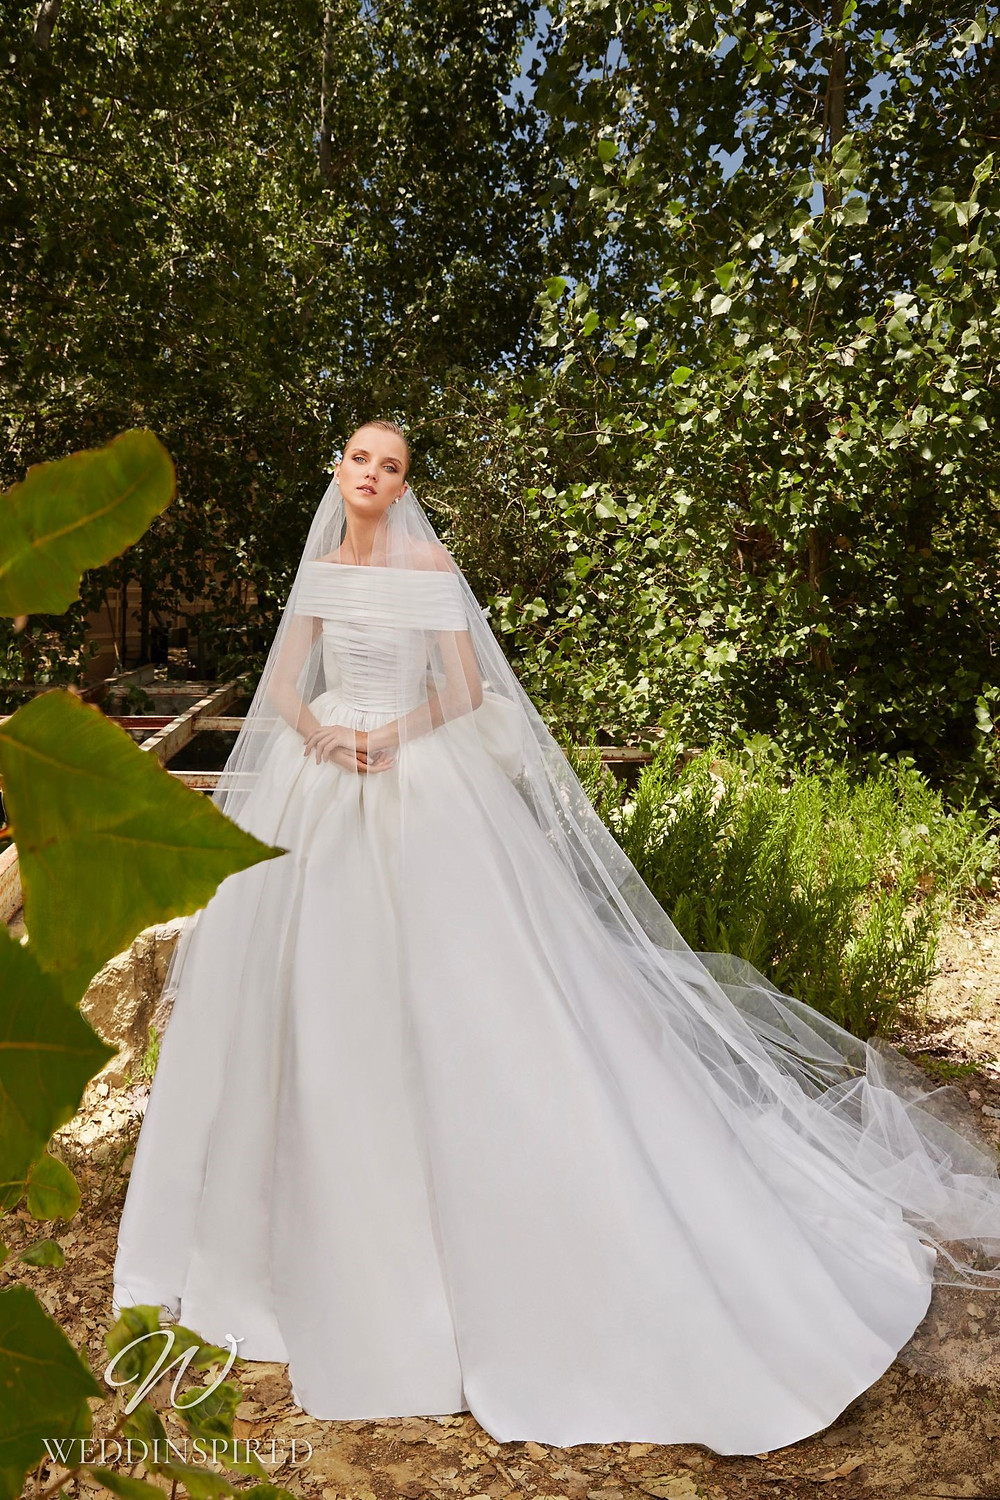 An Elie Saab Spring 2021 simple off the shoulder satin ball gown wedding dress